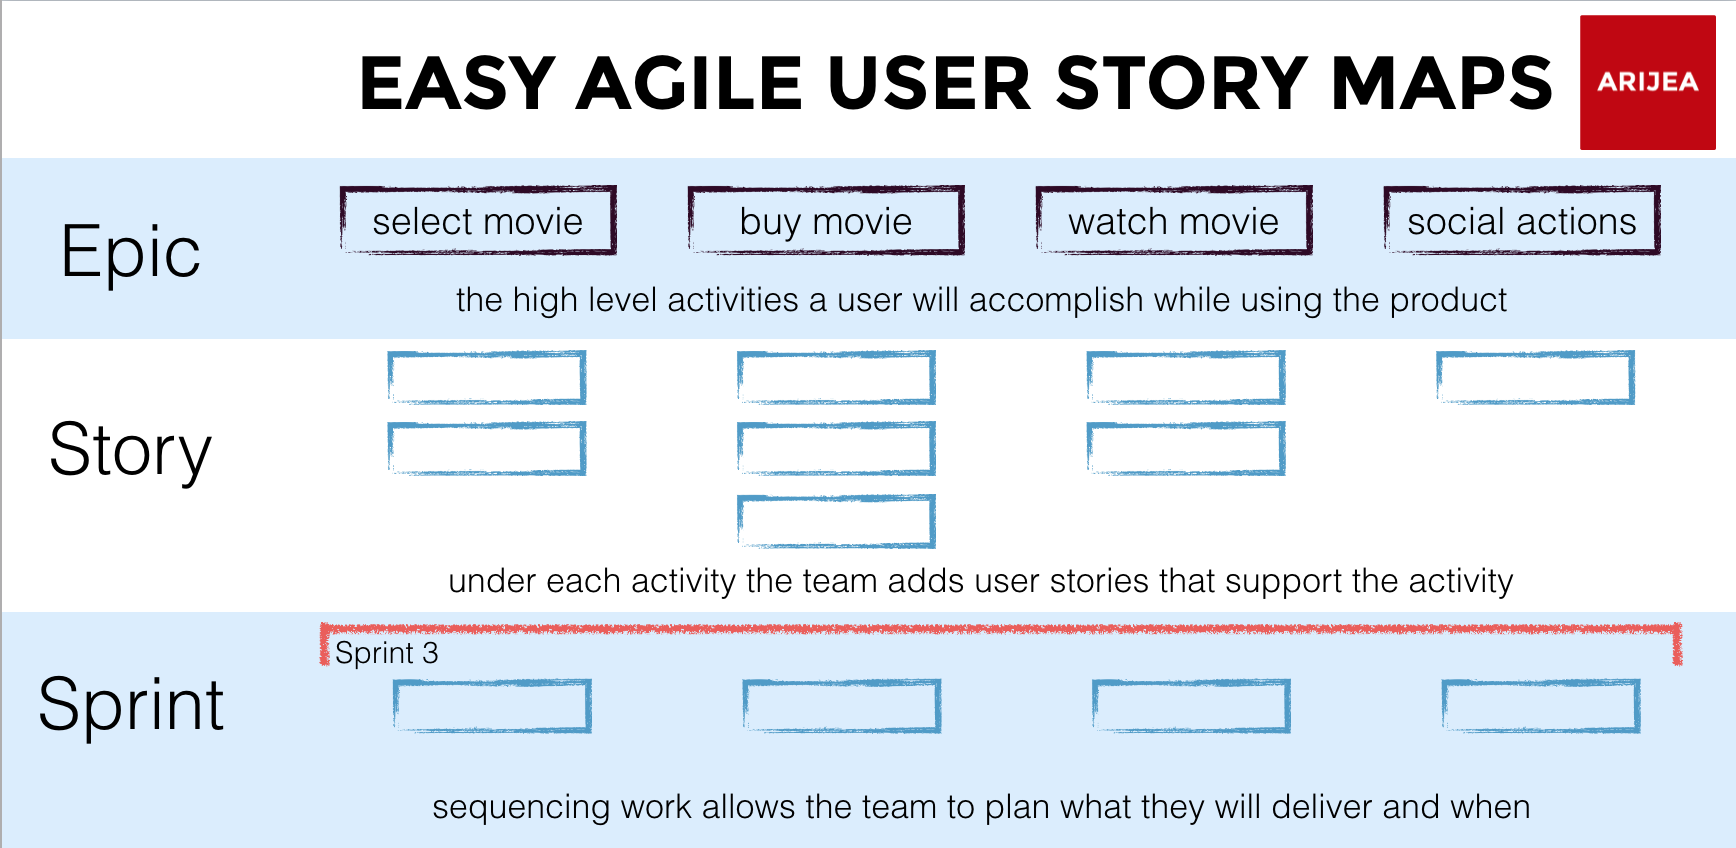 Anatomy of an Agile User Story Map - Easy Agile